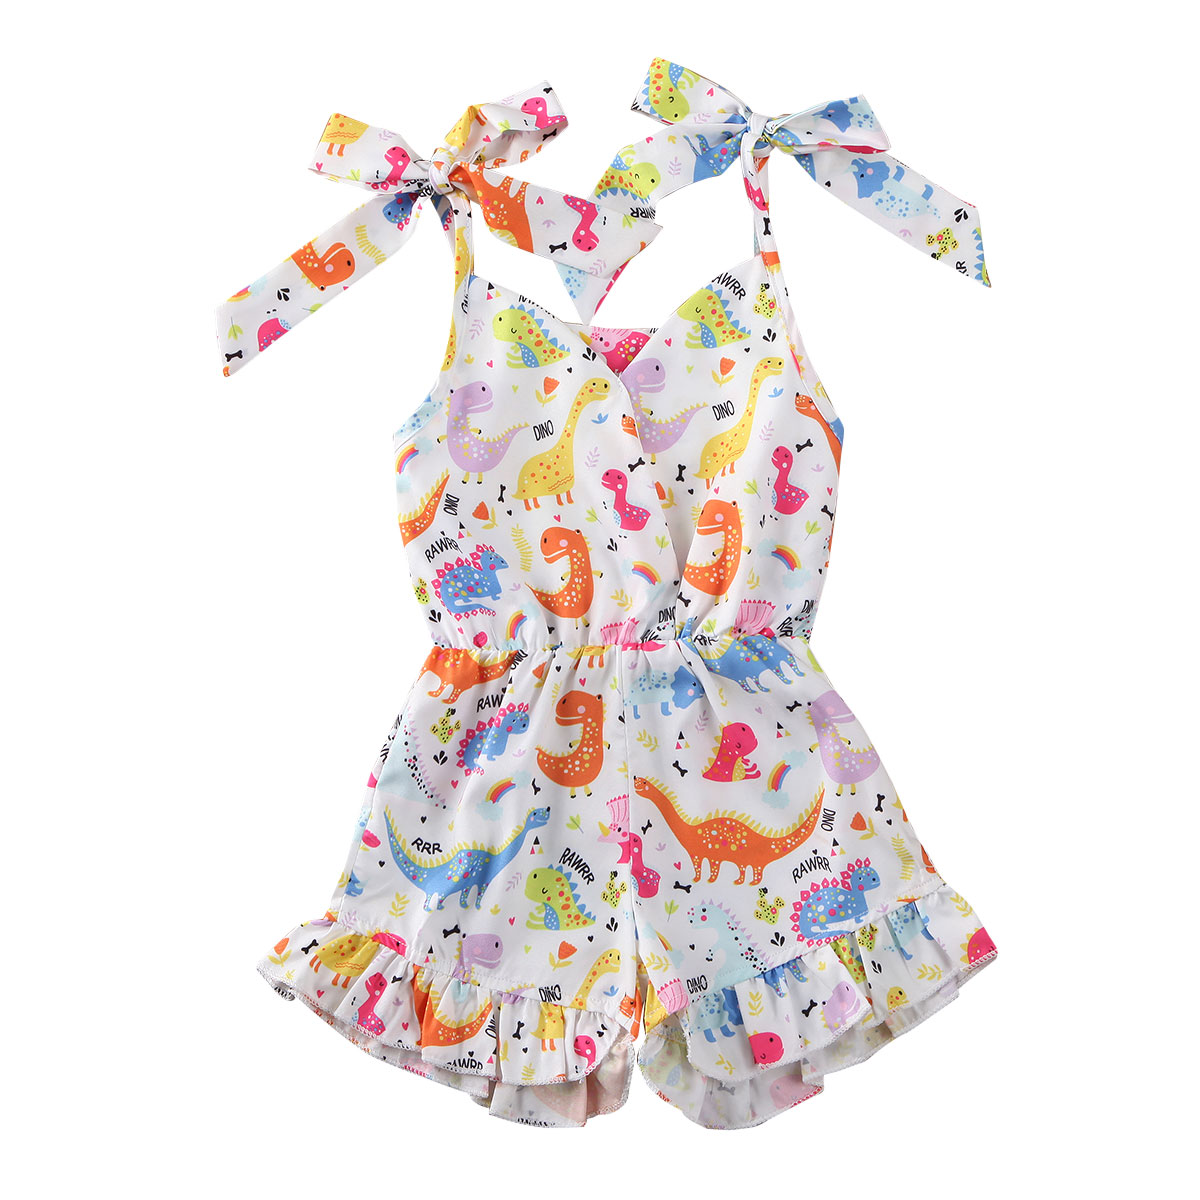 Newborn Kids Baby Girls Bandage Sling Romper Jumpsuit Outfits Clothes One-Piece